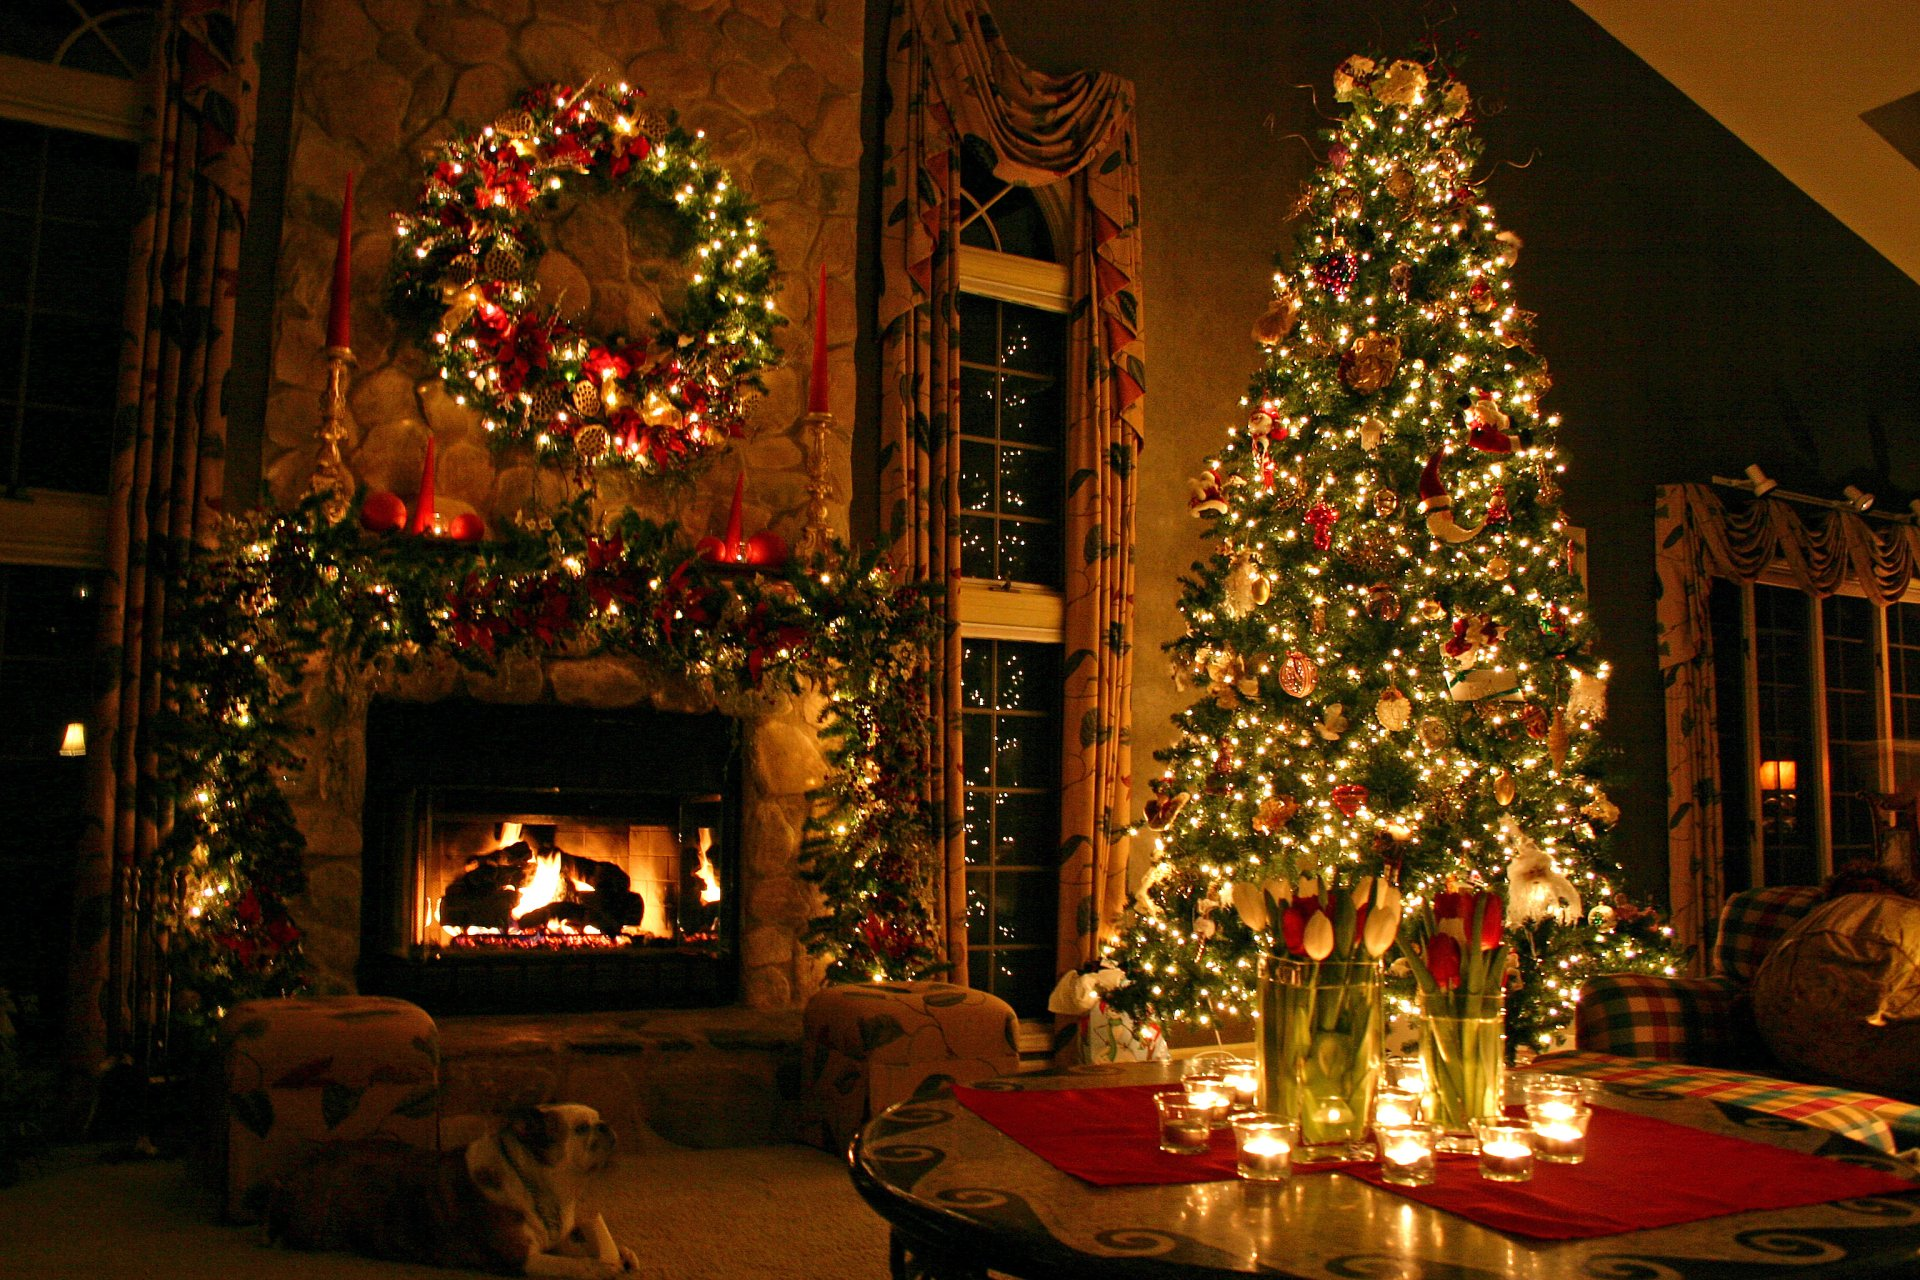 Holiday - Christmas  Christmas Lights Christmas Tree Candle Tulip Fireplace Christmas Ornaments Wallpaper